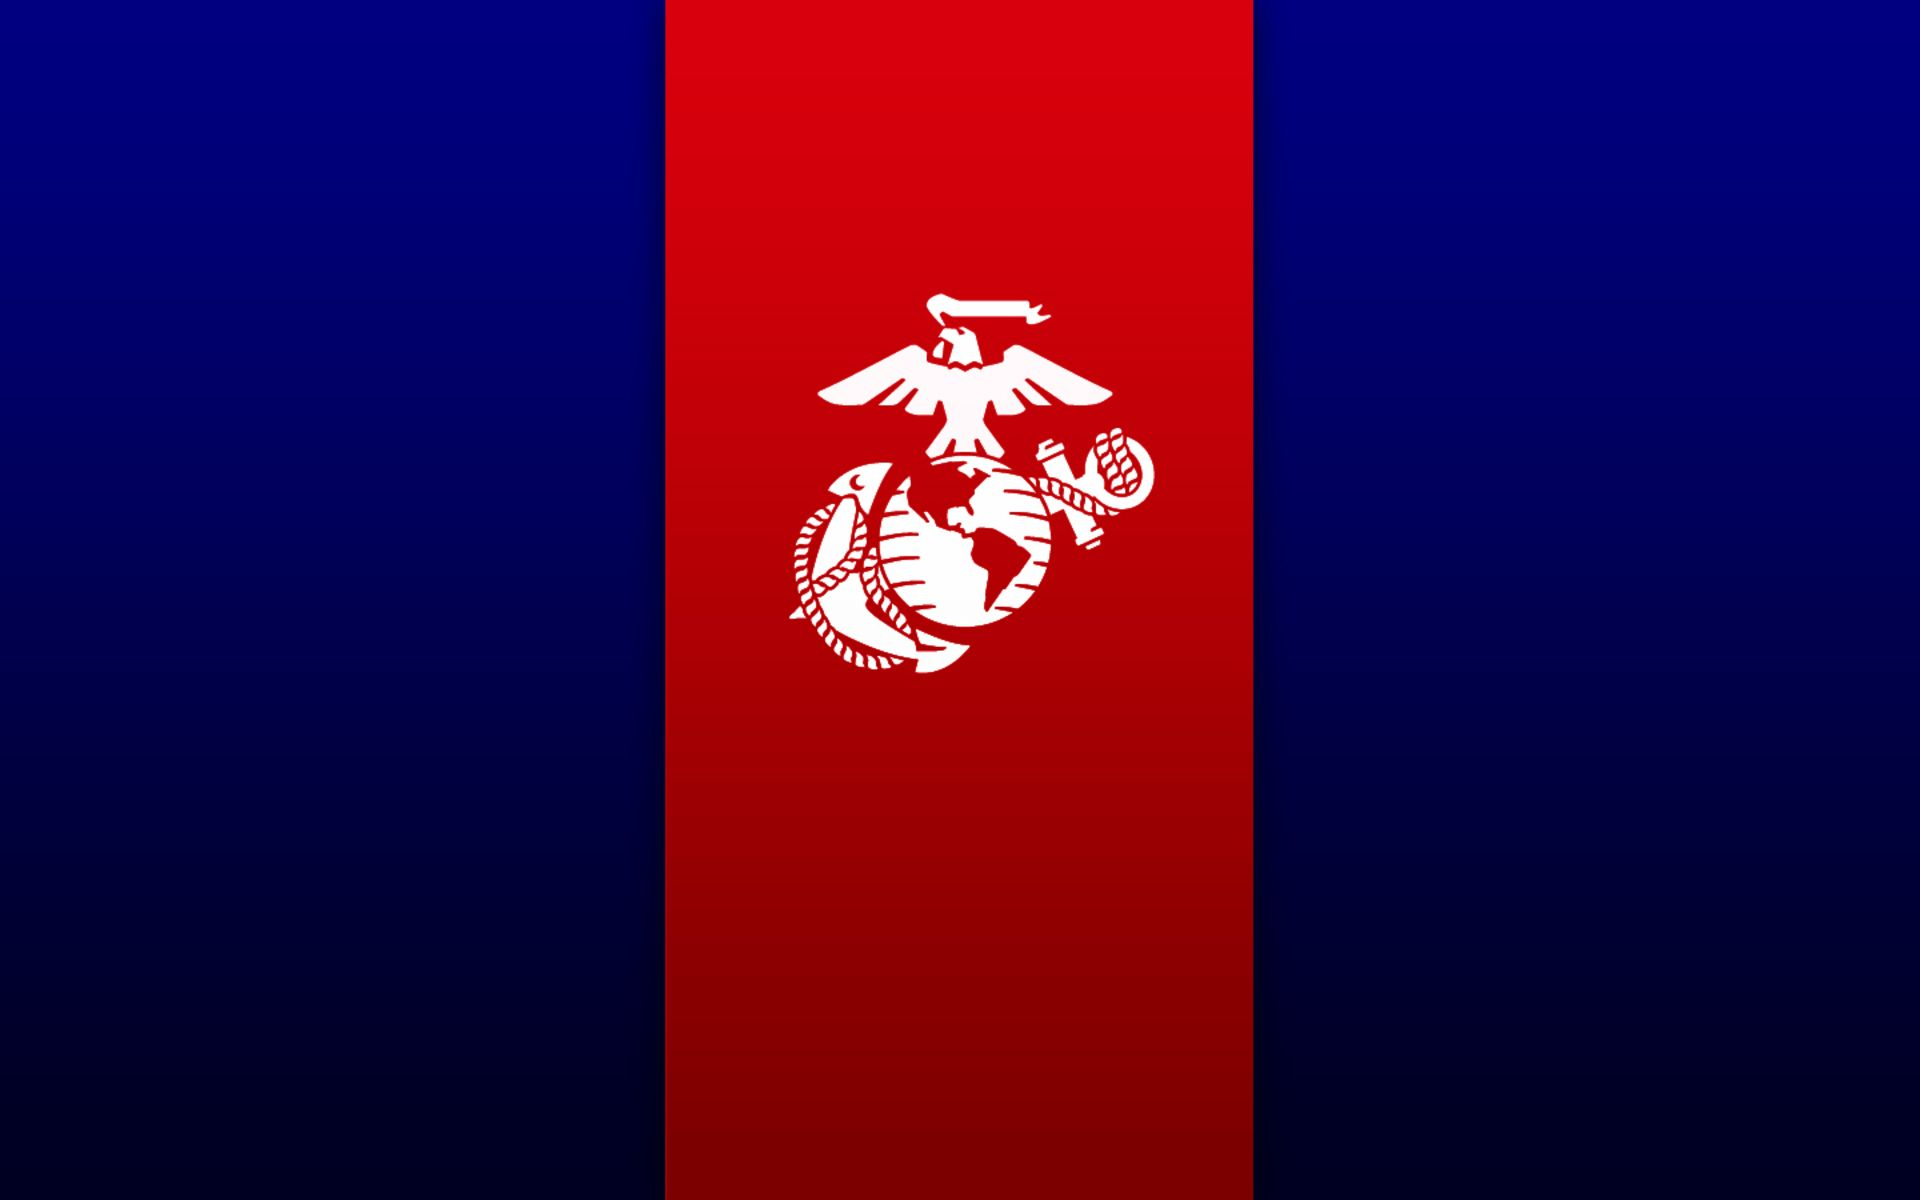 1920x1440 px hd desktop wallpaper wallpapers usmc red for Marine corps powerpoint templates